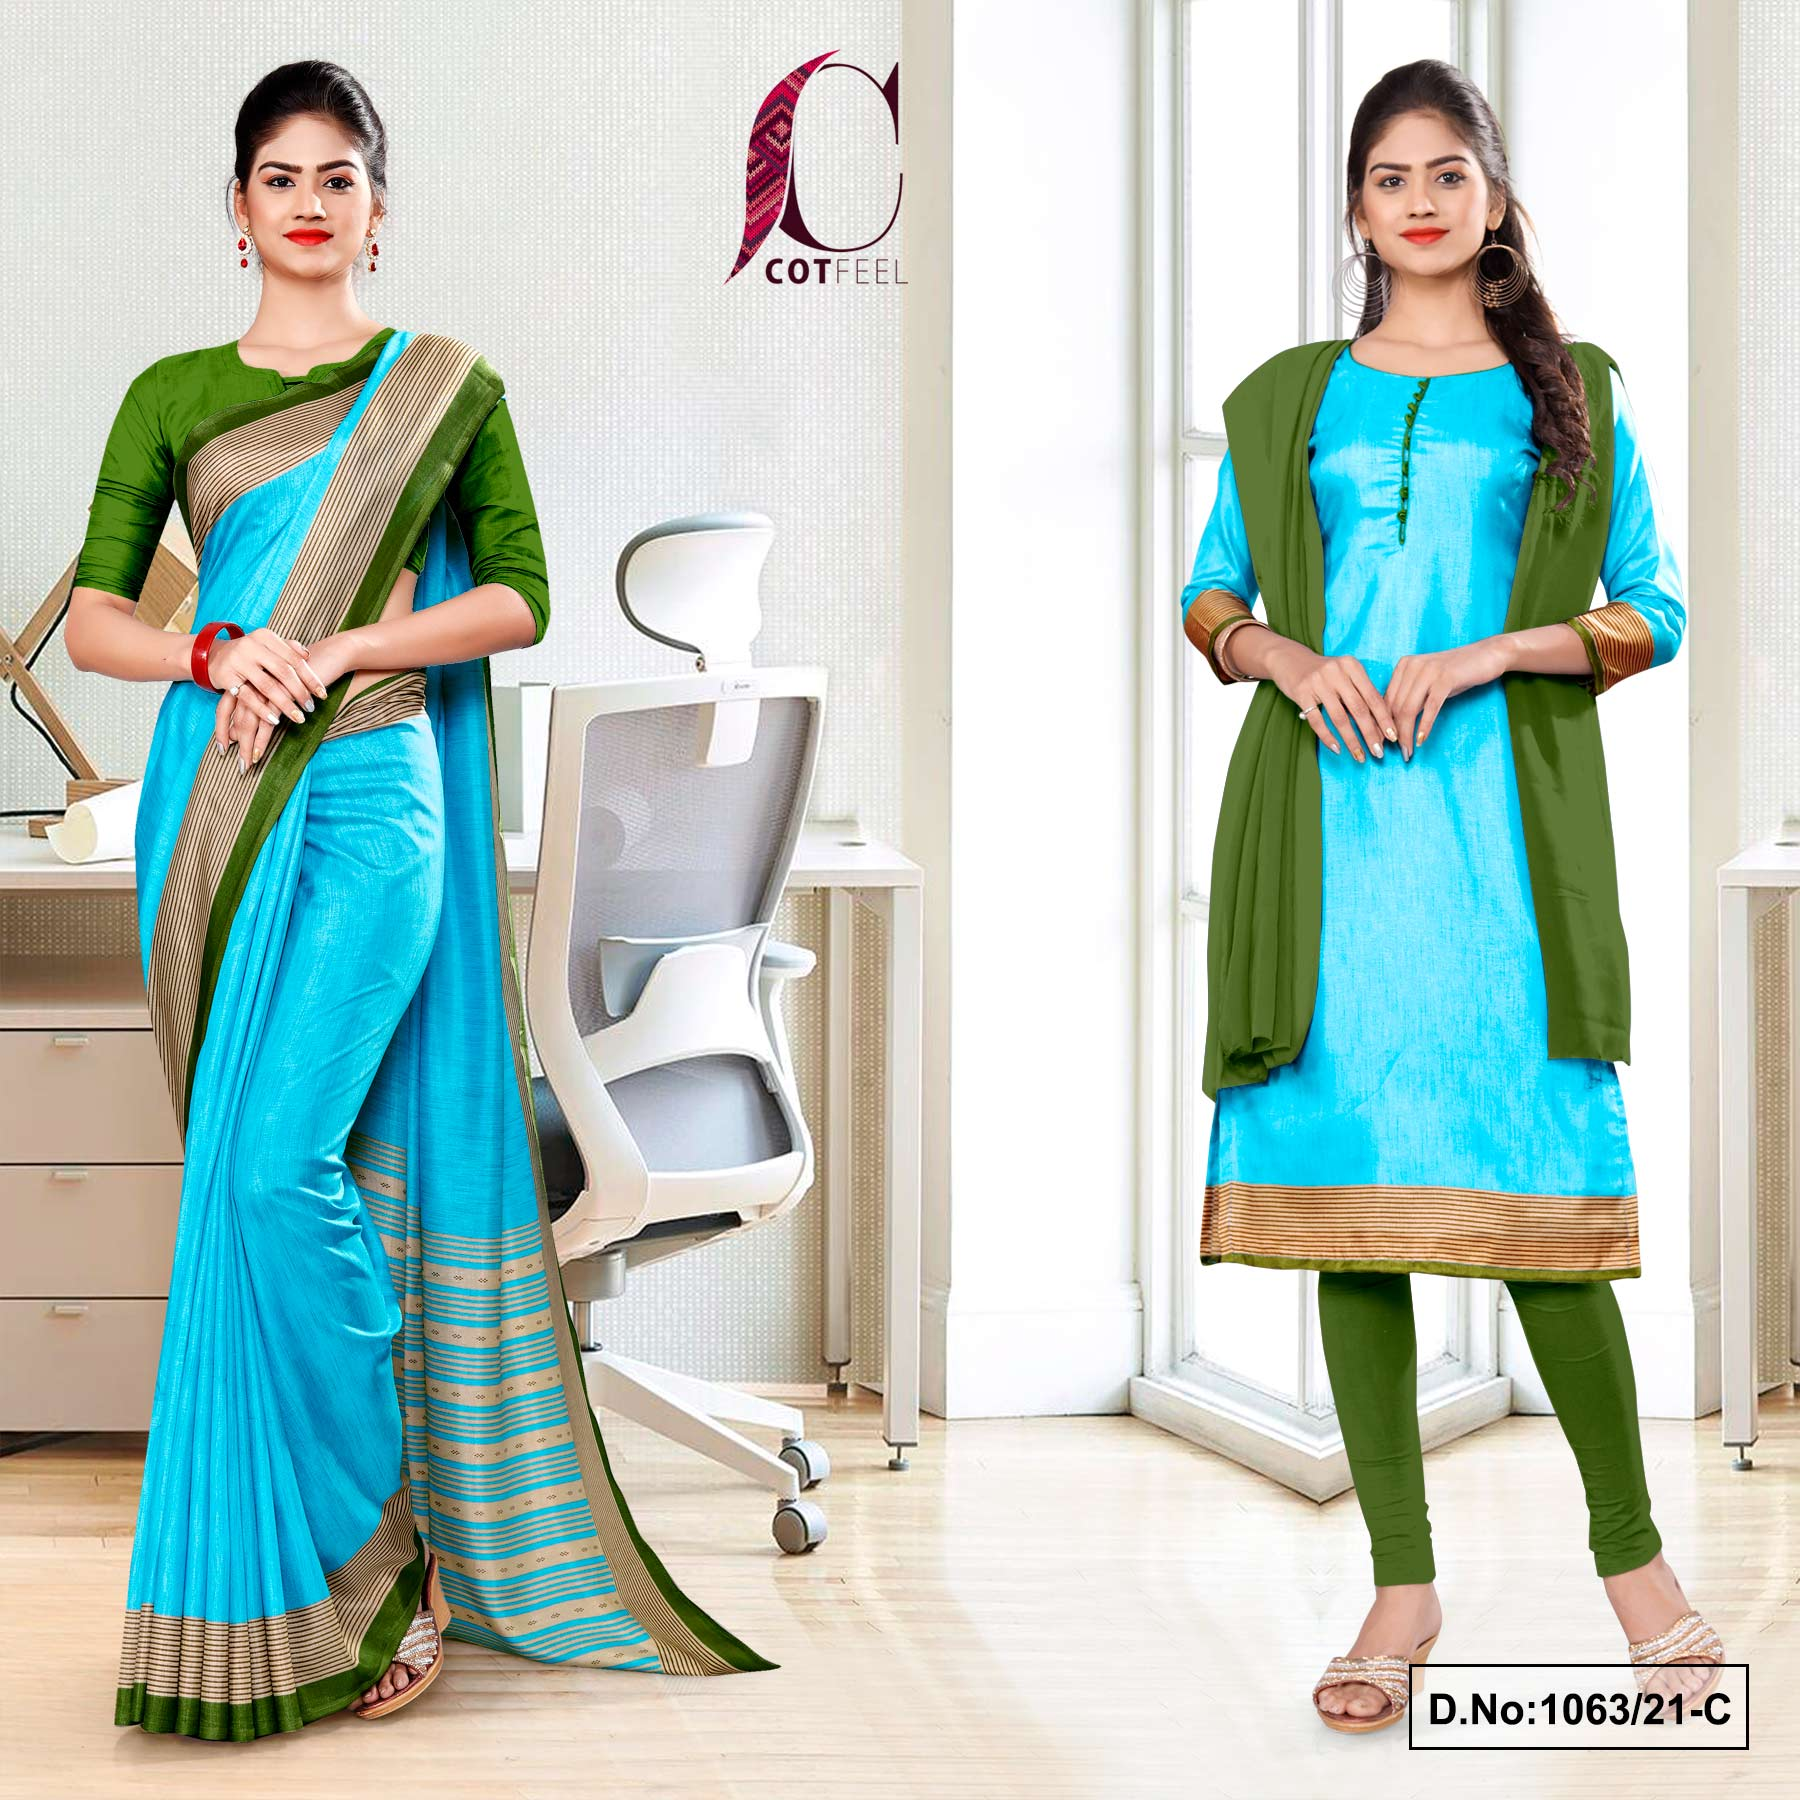 Sky Blue Bottle Green Plain Border Premium Polycotton CotFeel Saree Salwar Combo for Receptionist Uniform Sarees 1063